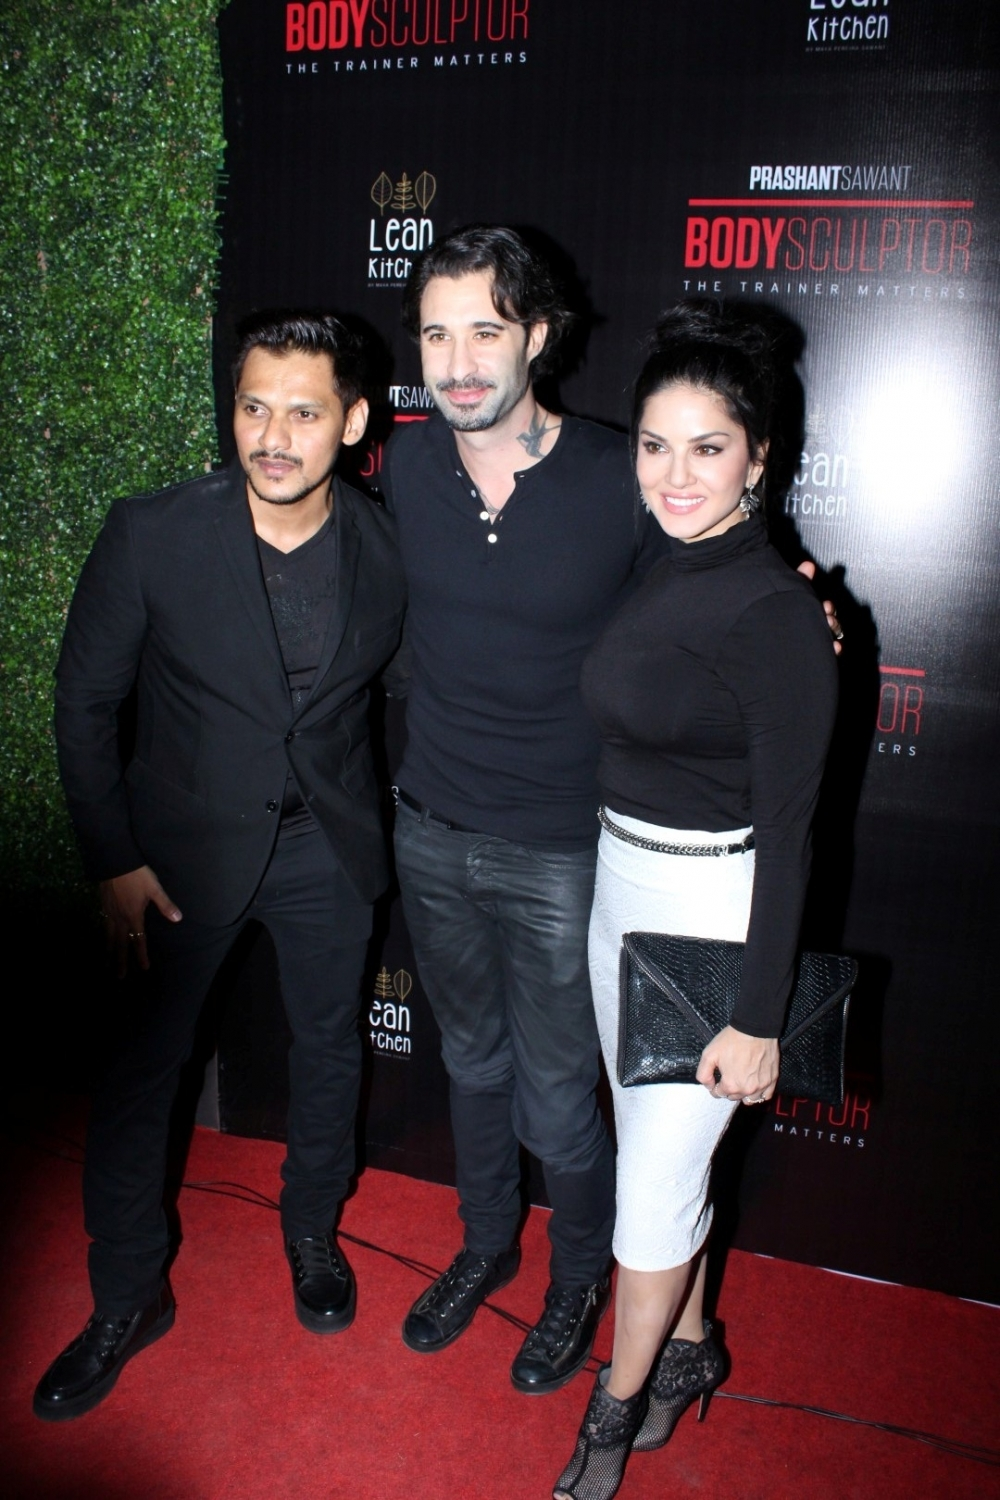 Mumbai: Actress Sunny Leone with her husband Daniel Weber and Prashant Sawant, owner, Body Sculptor Gym during the launch party of Body Sculptor Gym in Mumbai on Jan 28, 2017. (Photo: IANS)